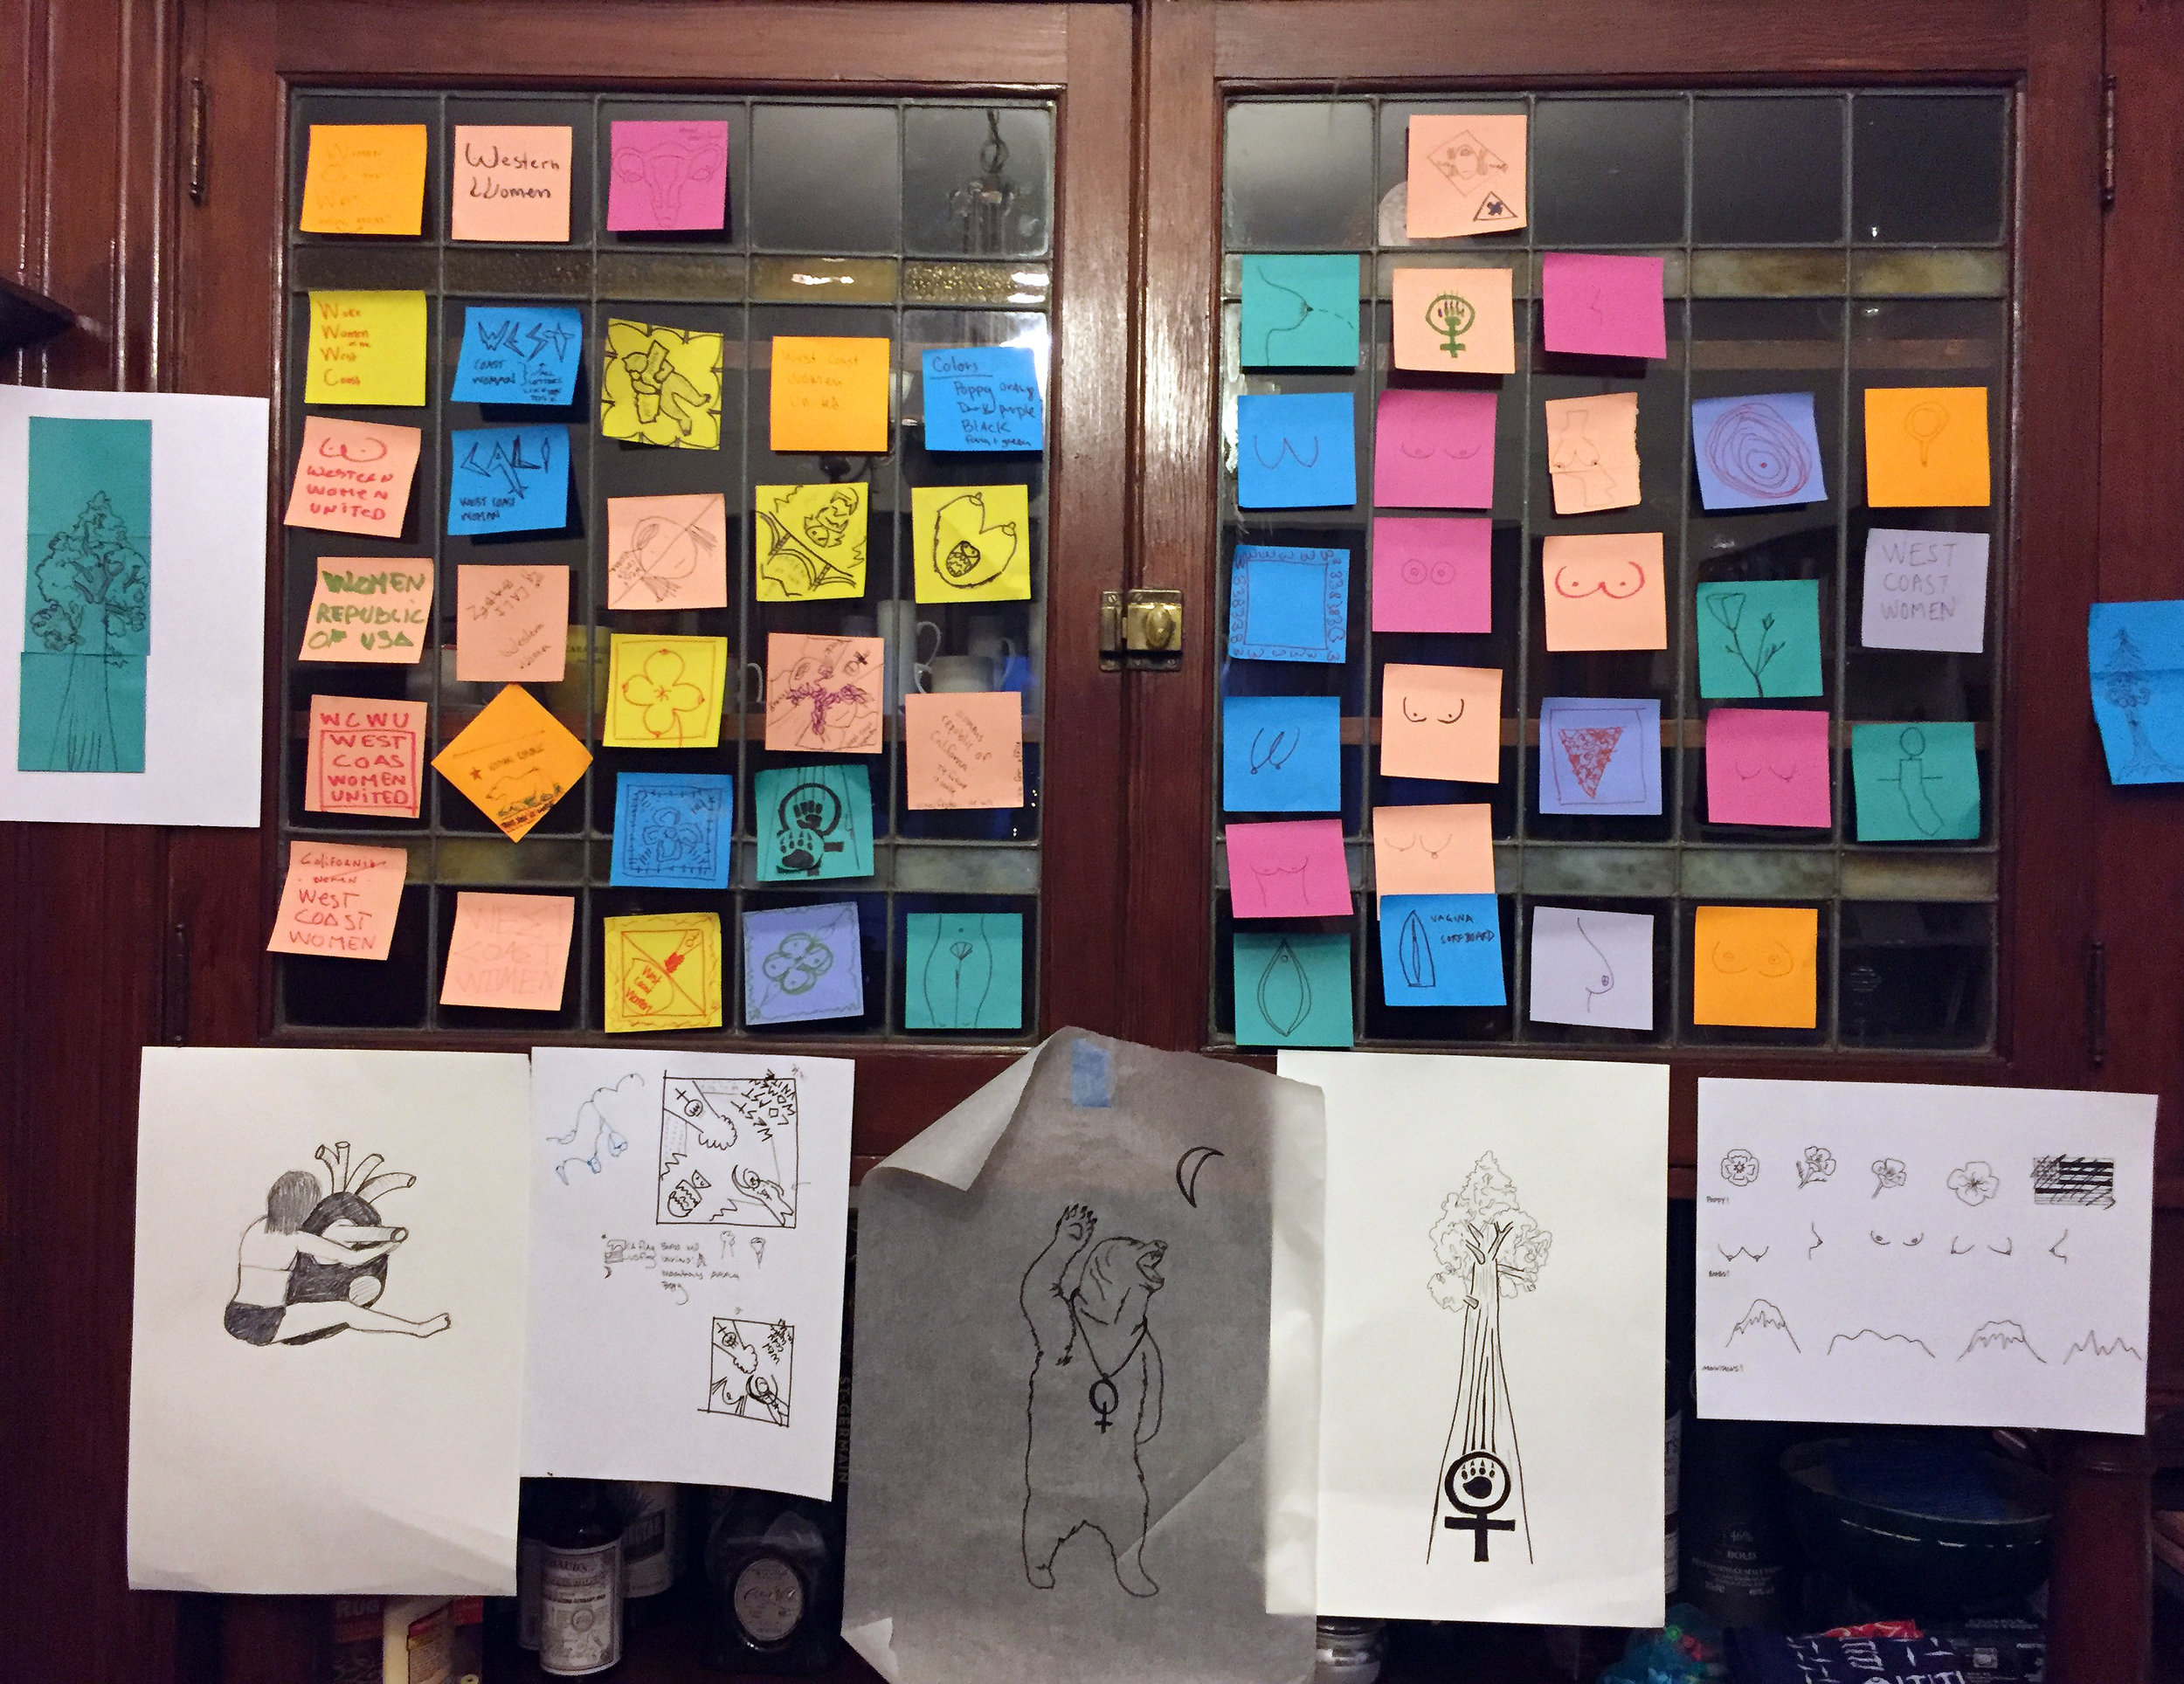 Your images can be very simple - try starting with a post-it.